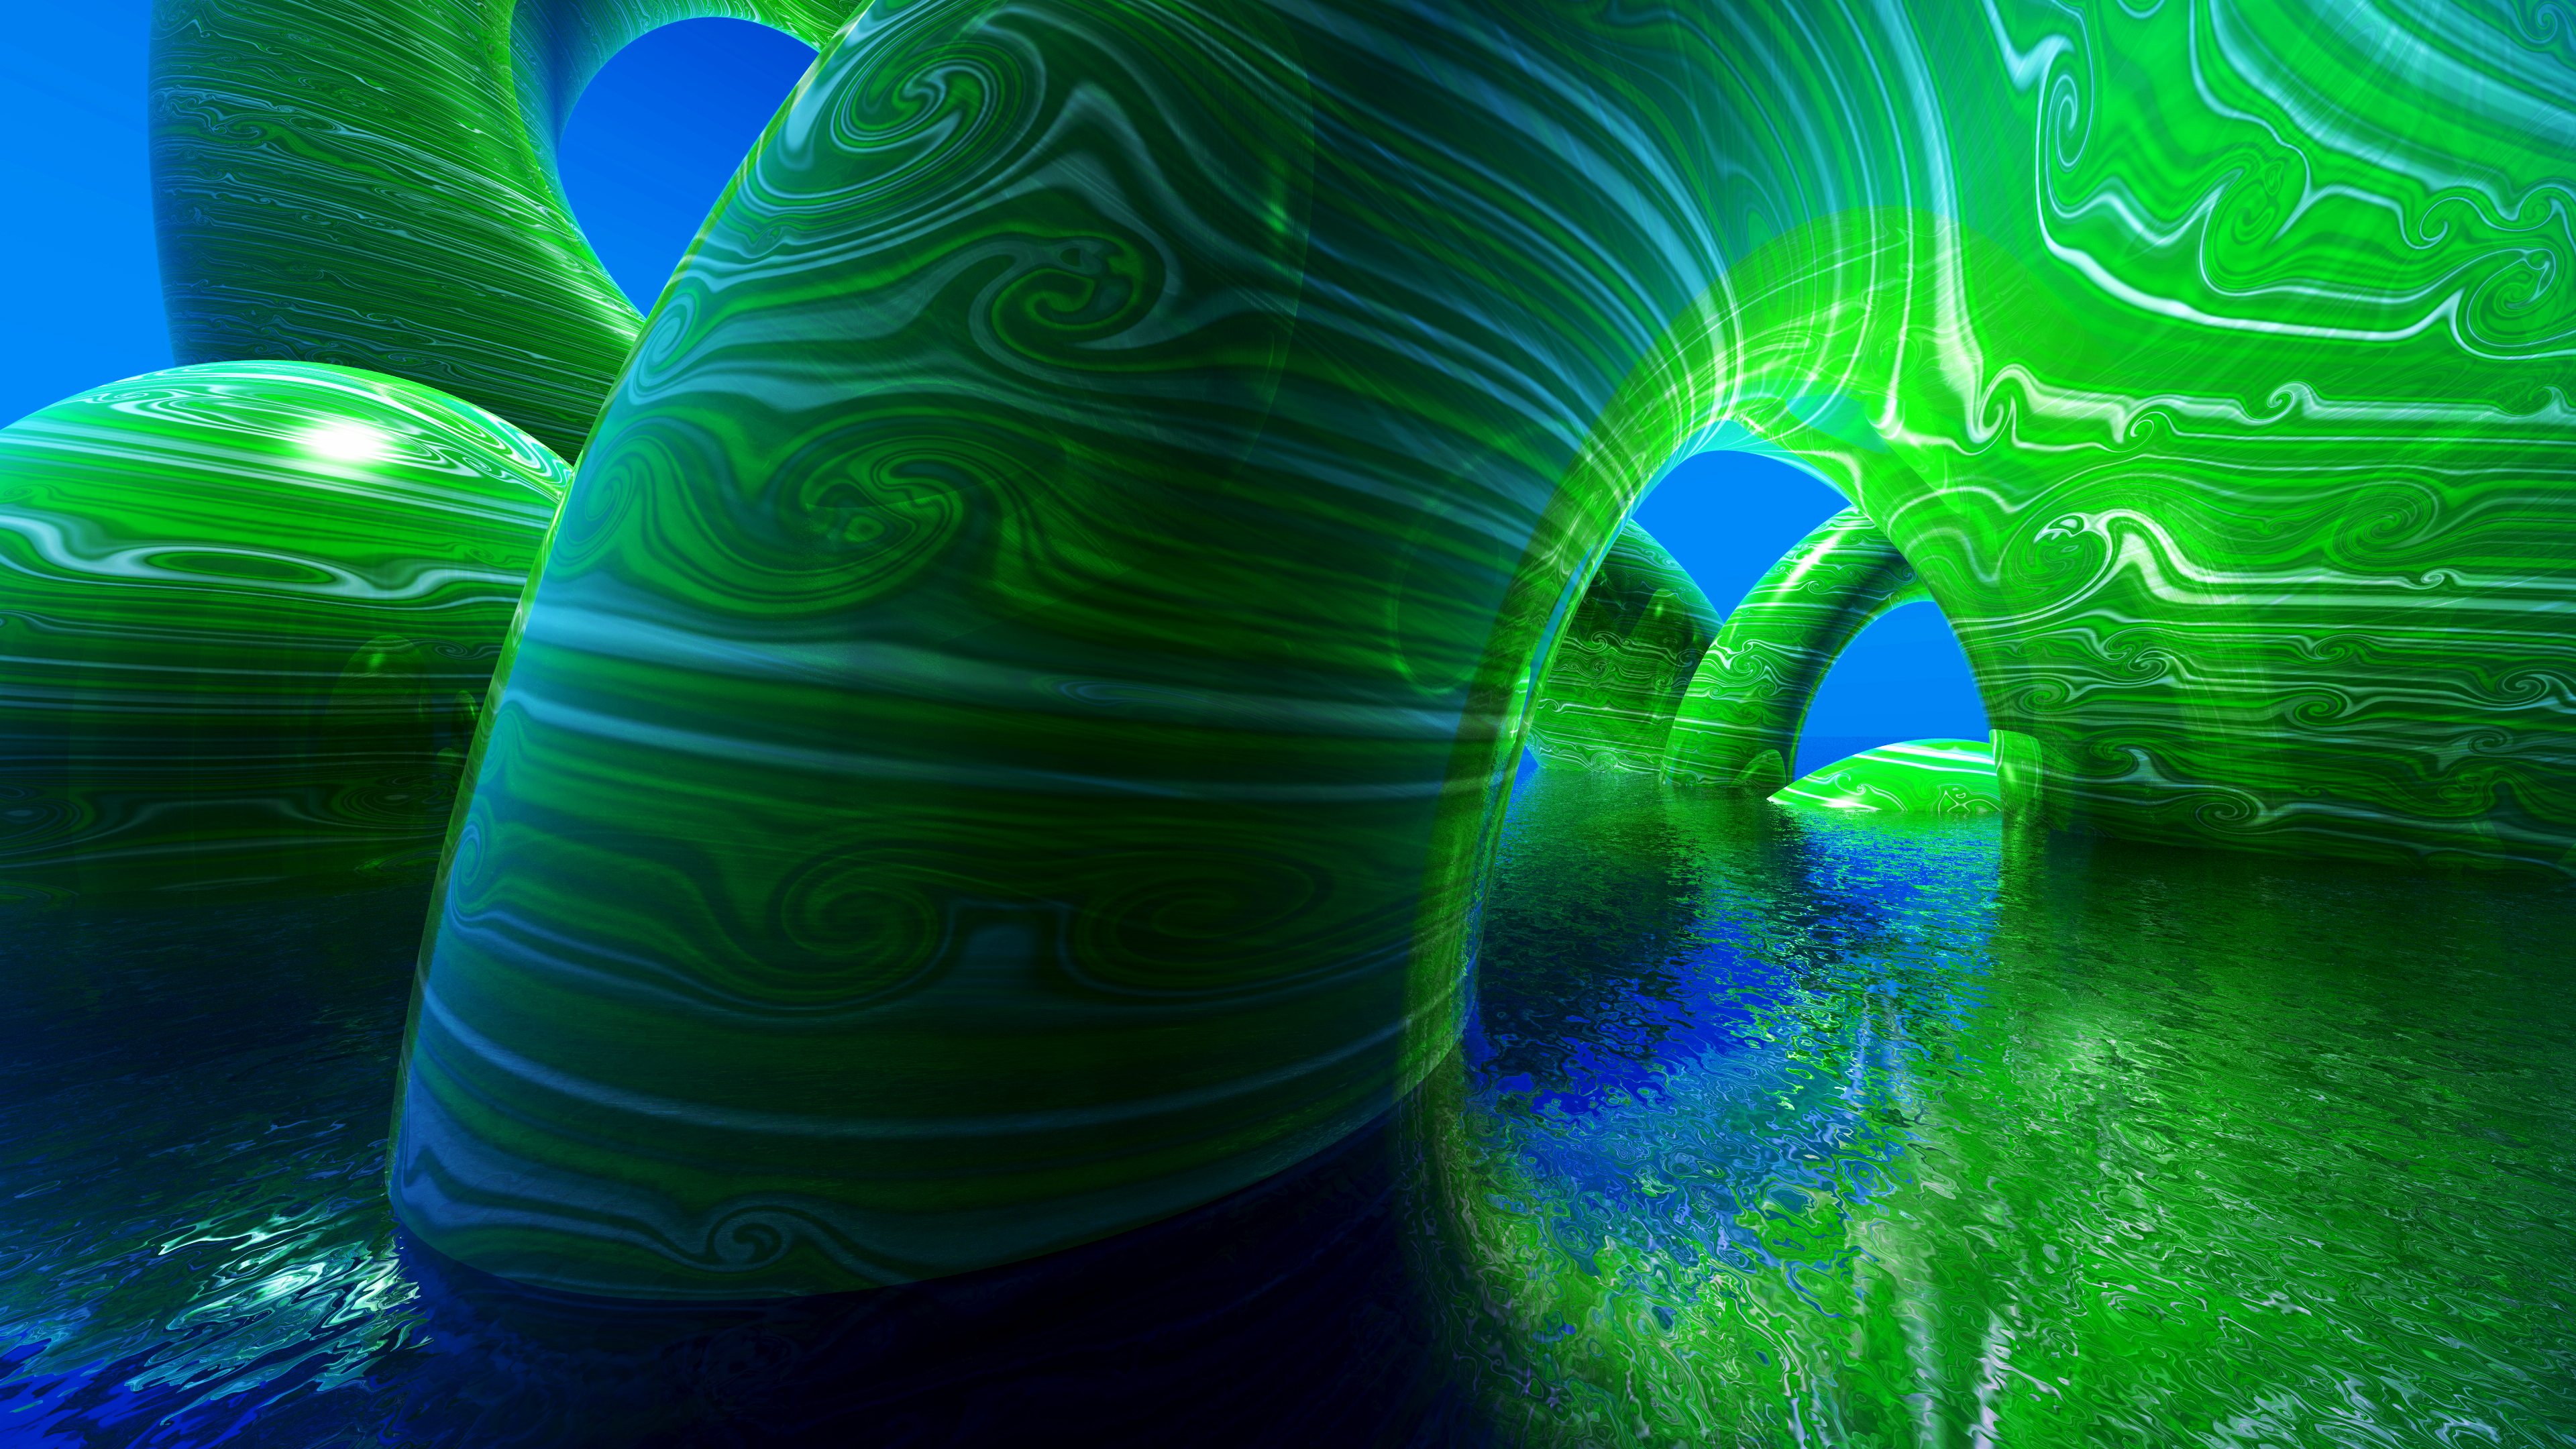 Wallpapers Abstract 4k Wallpaper 3d Green Blue Abstract 4k